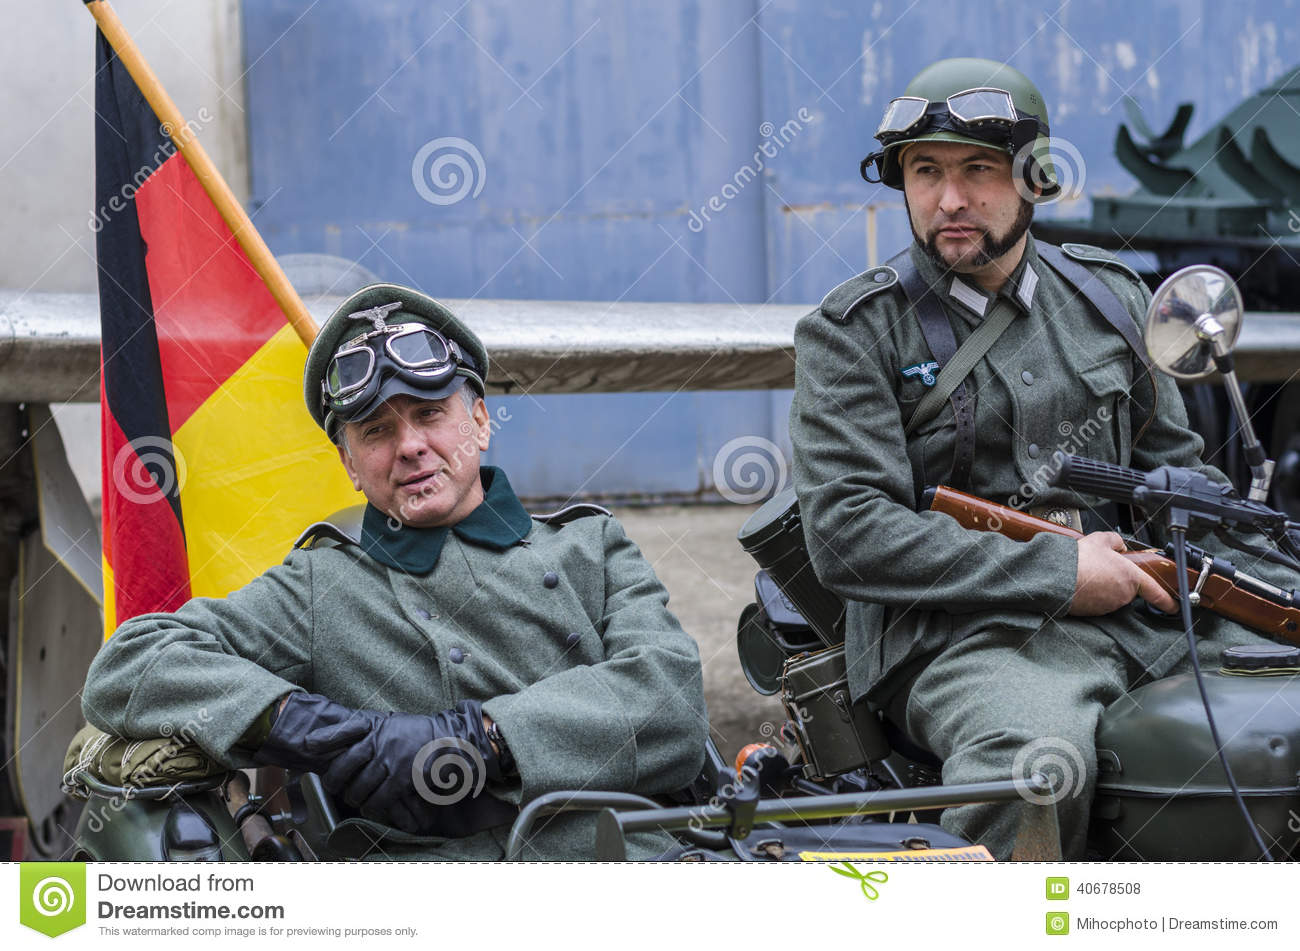 Nazi officer with bodyguard soldier stand on combat car with german